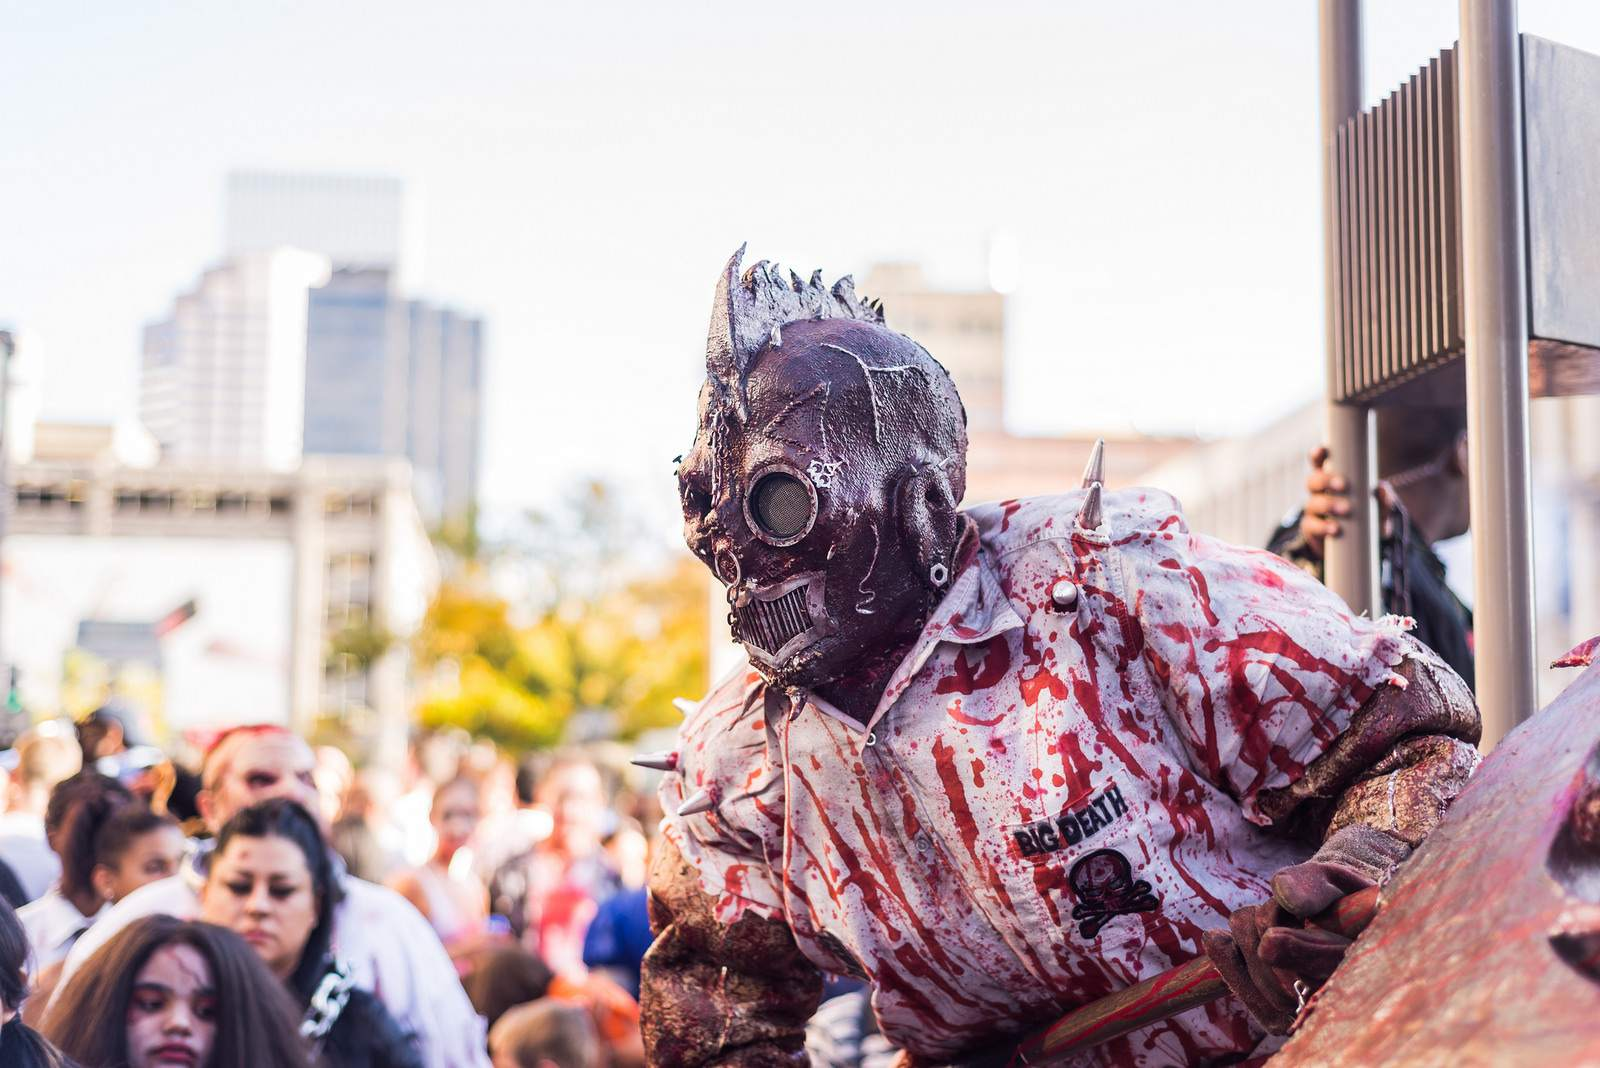 zombie crawl10 The Zombie Crawl in Downtown Denver